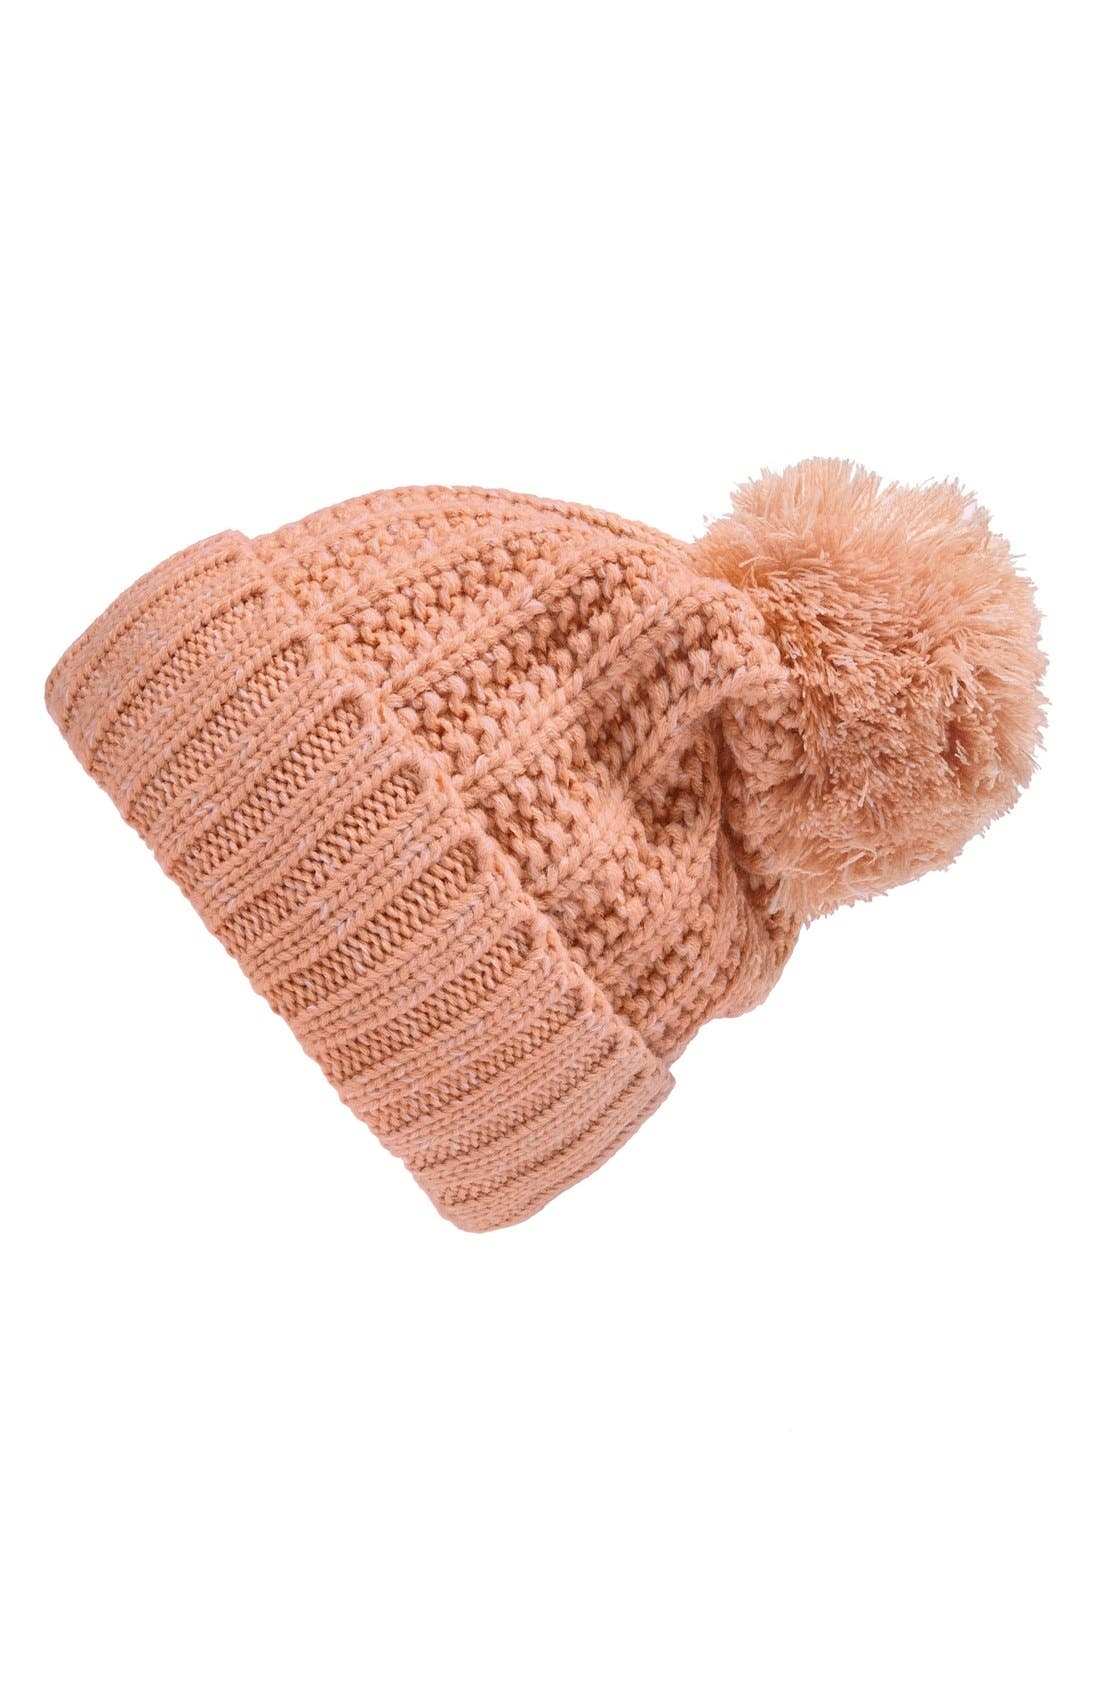 Alternate Image 1 Selected - Phase 3 Marled Cuff Beanie with Pompom